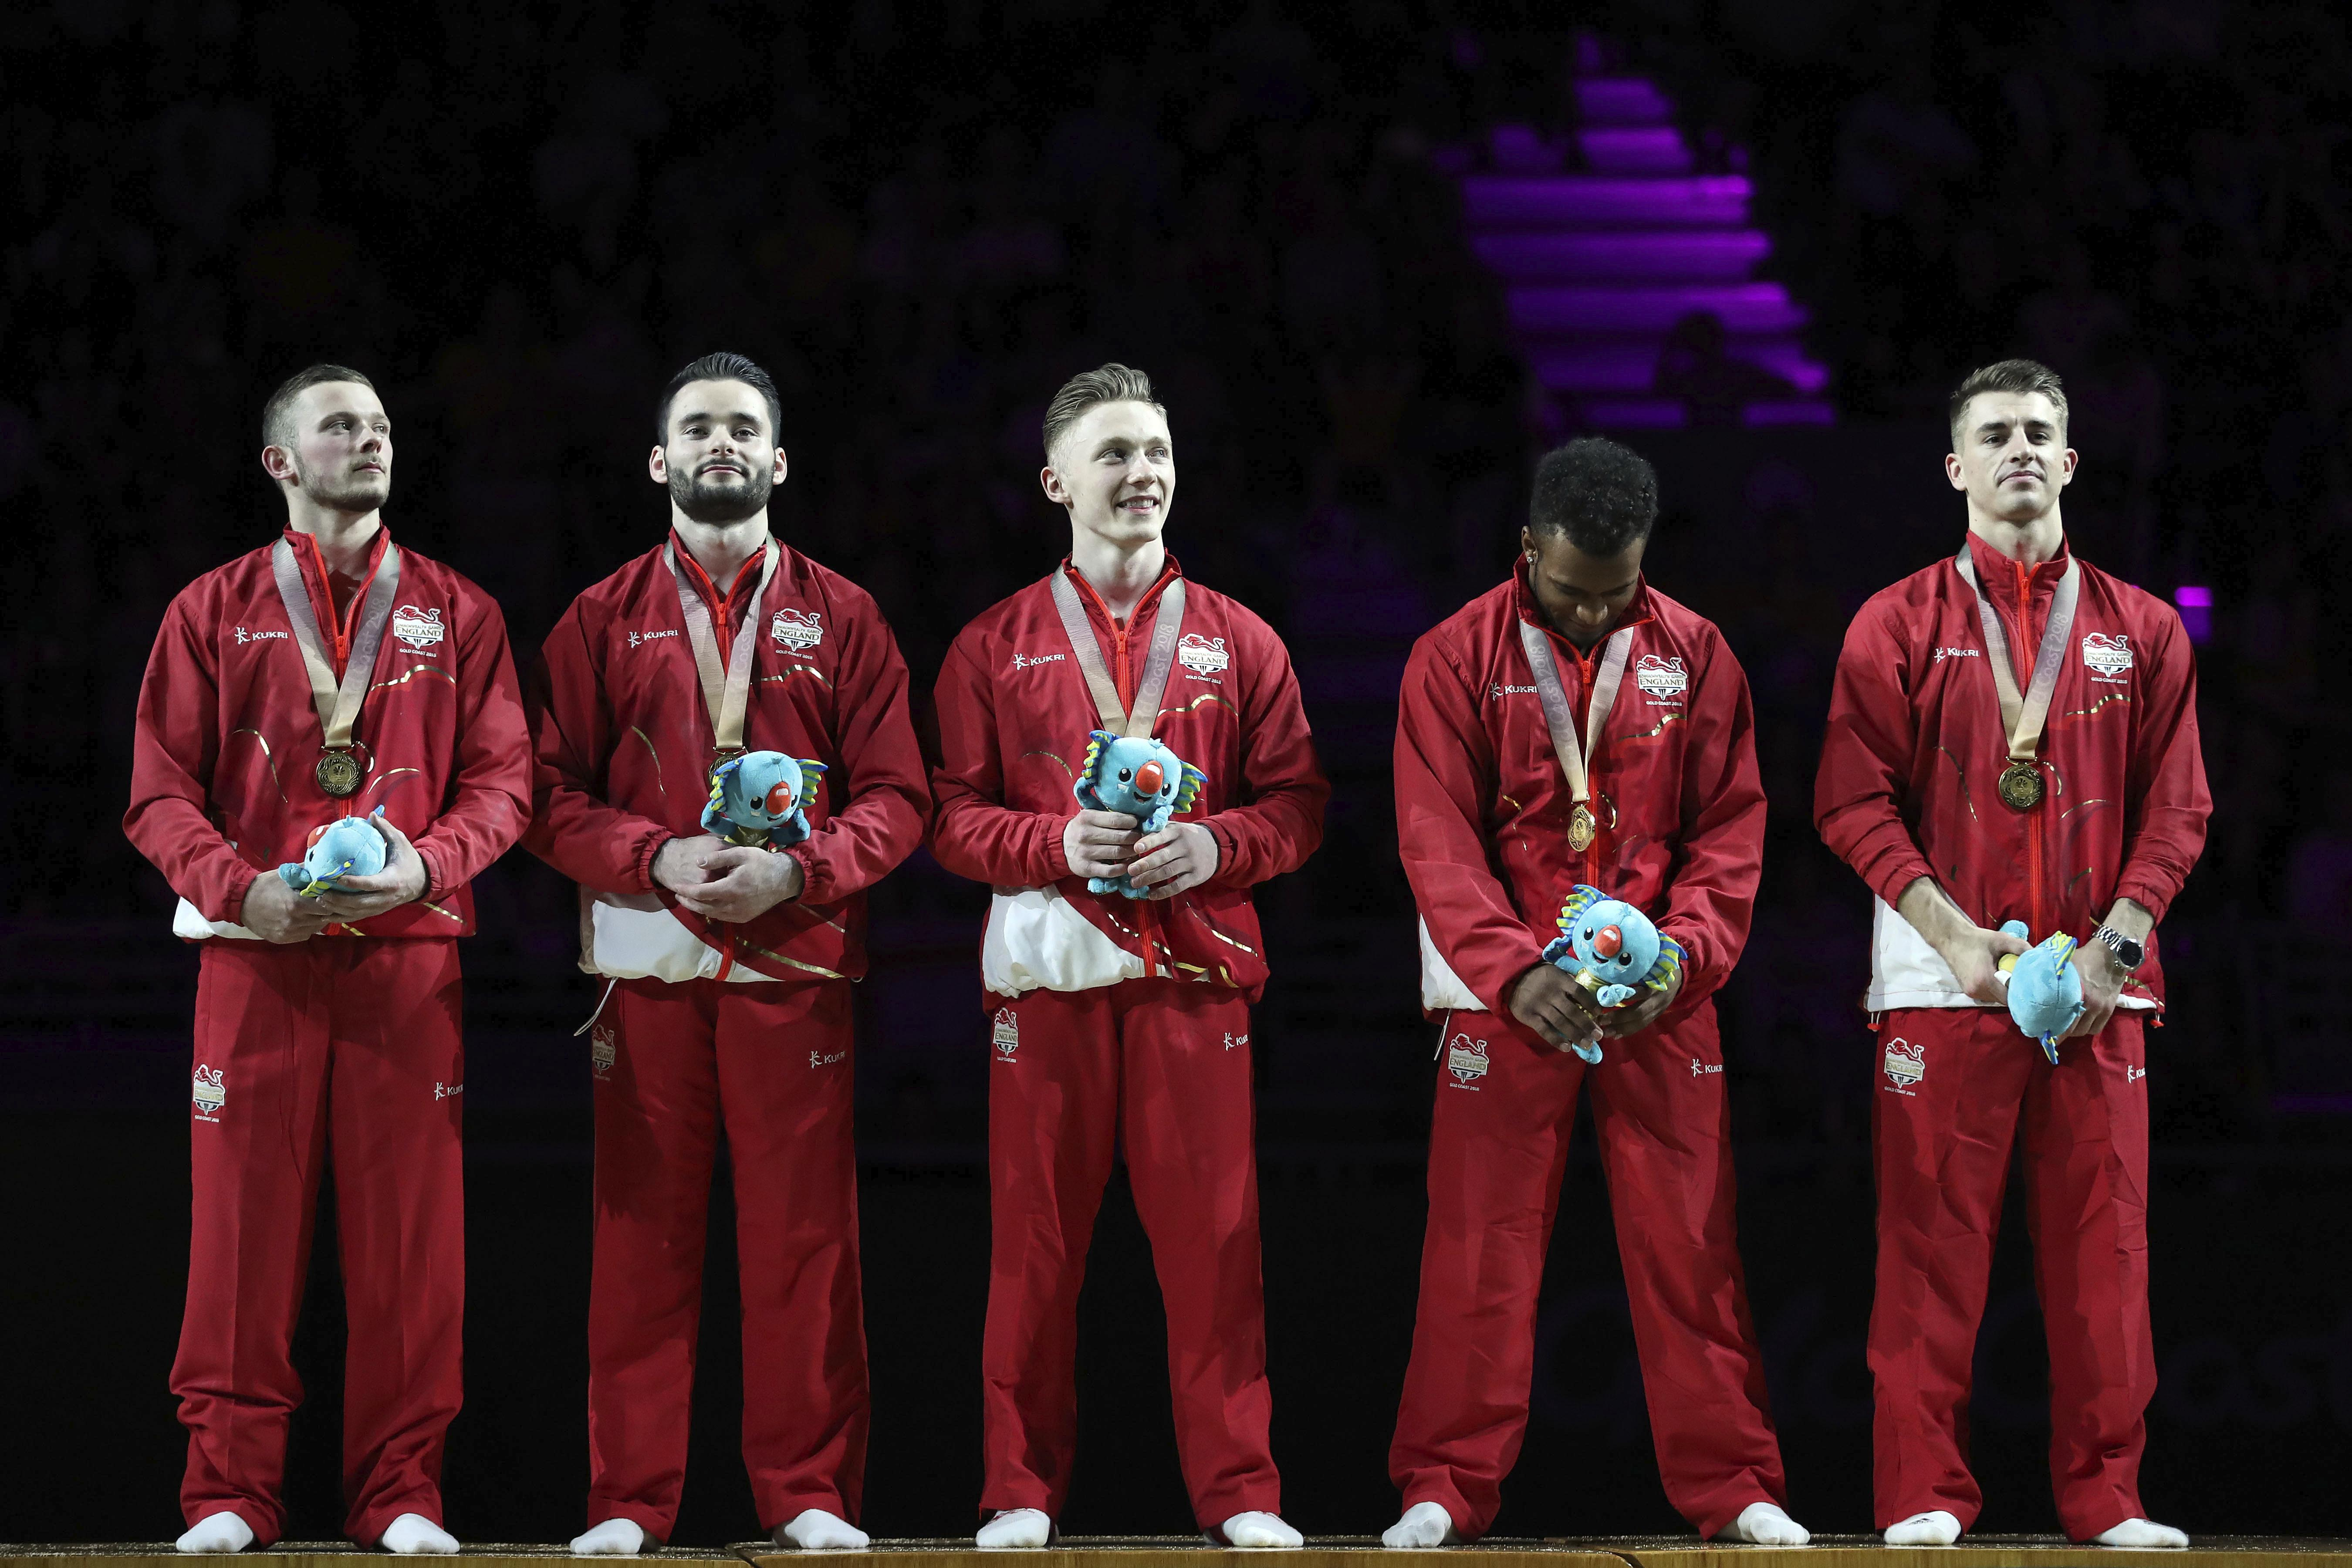 England won the men's team event in the gymnastics